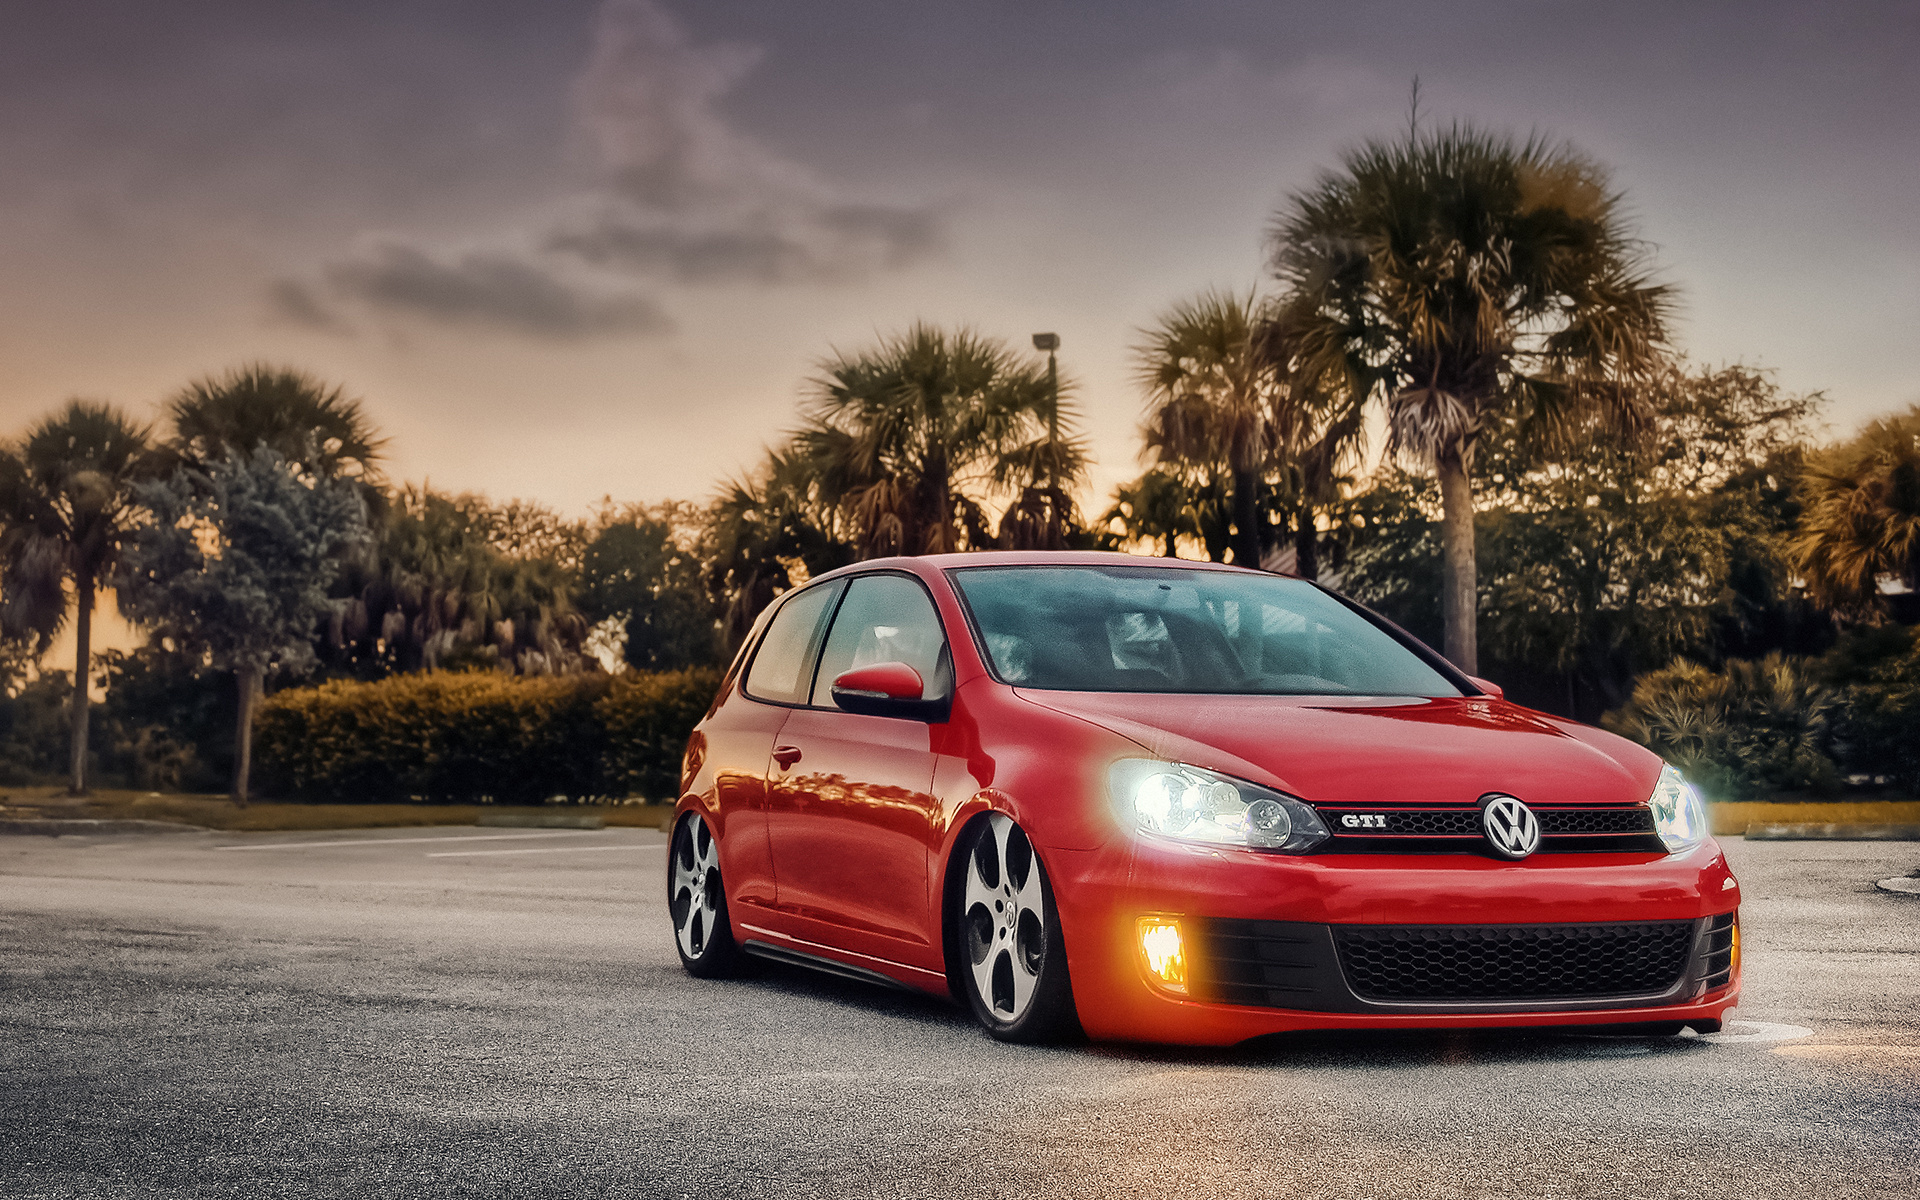 Volkswagen Golf Cool Car Wallpapers